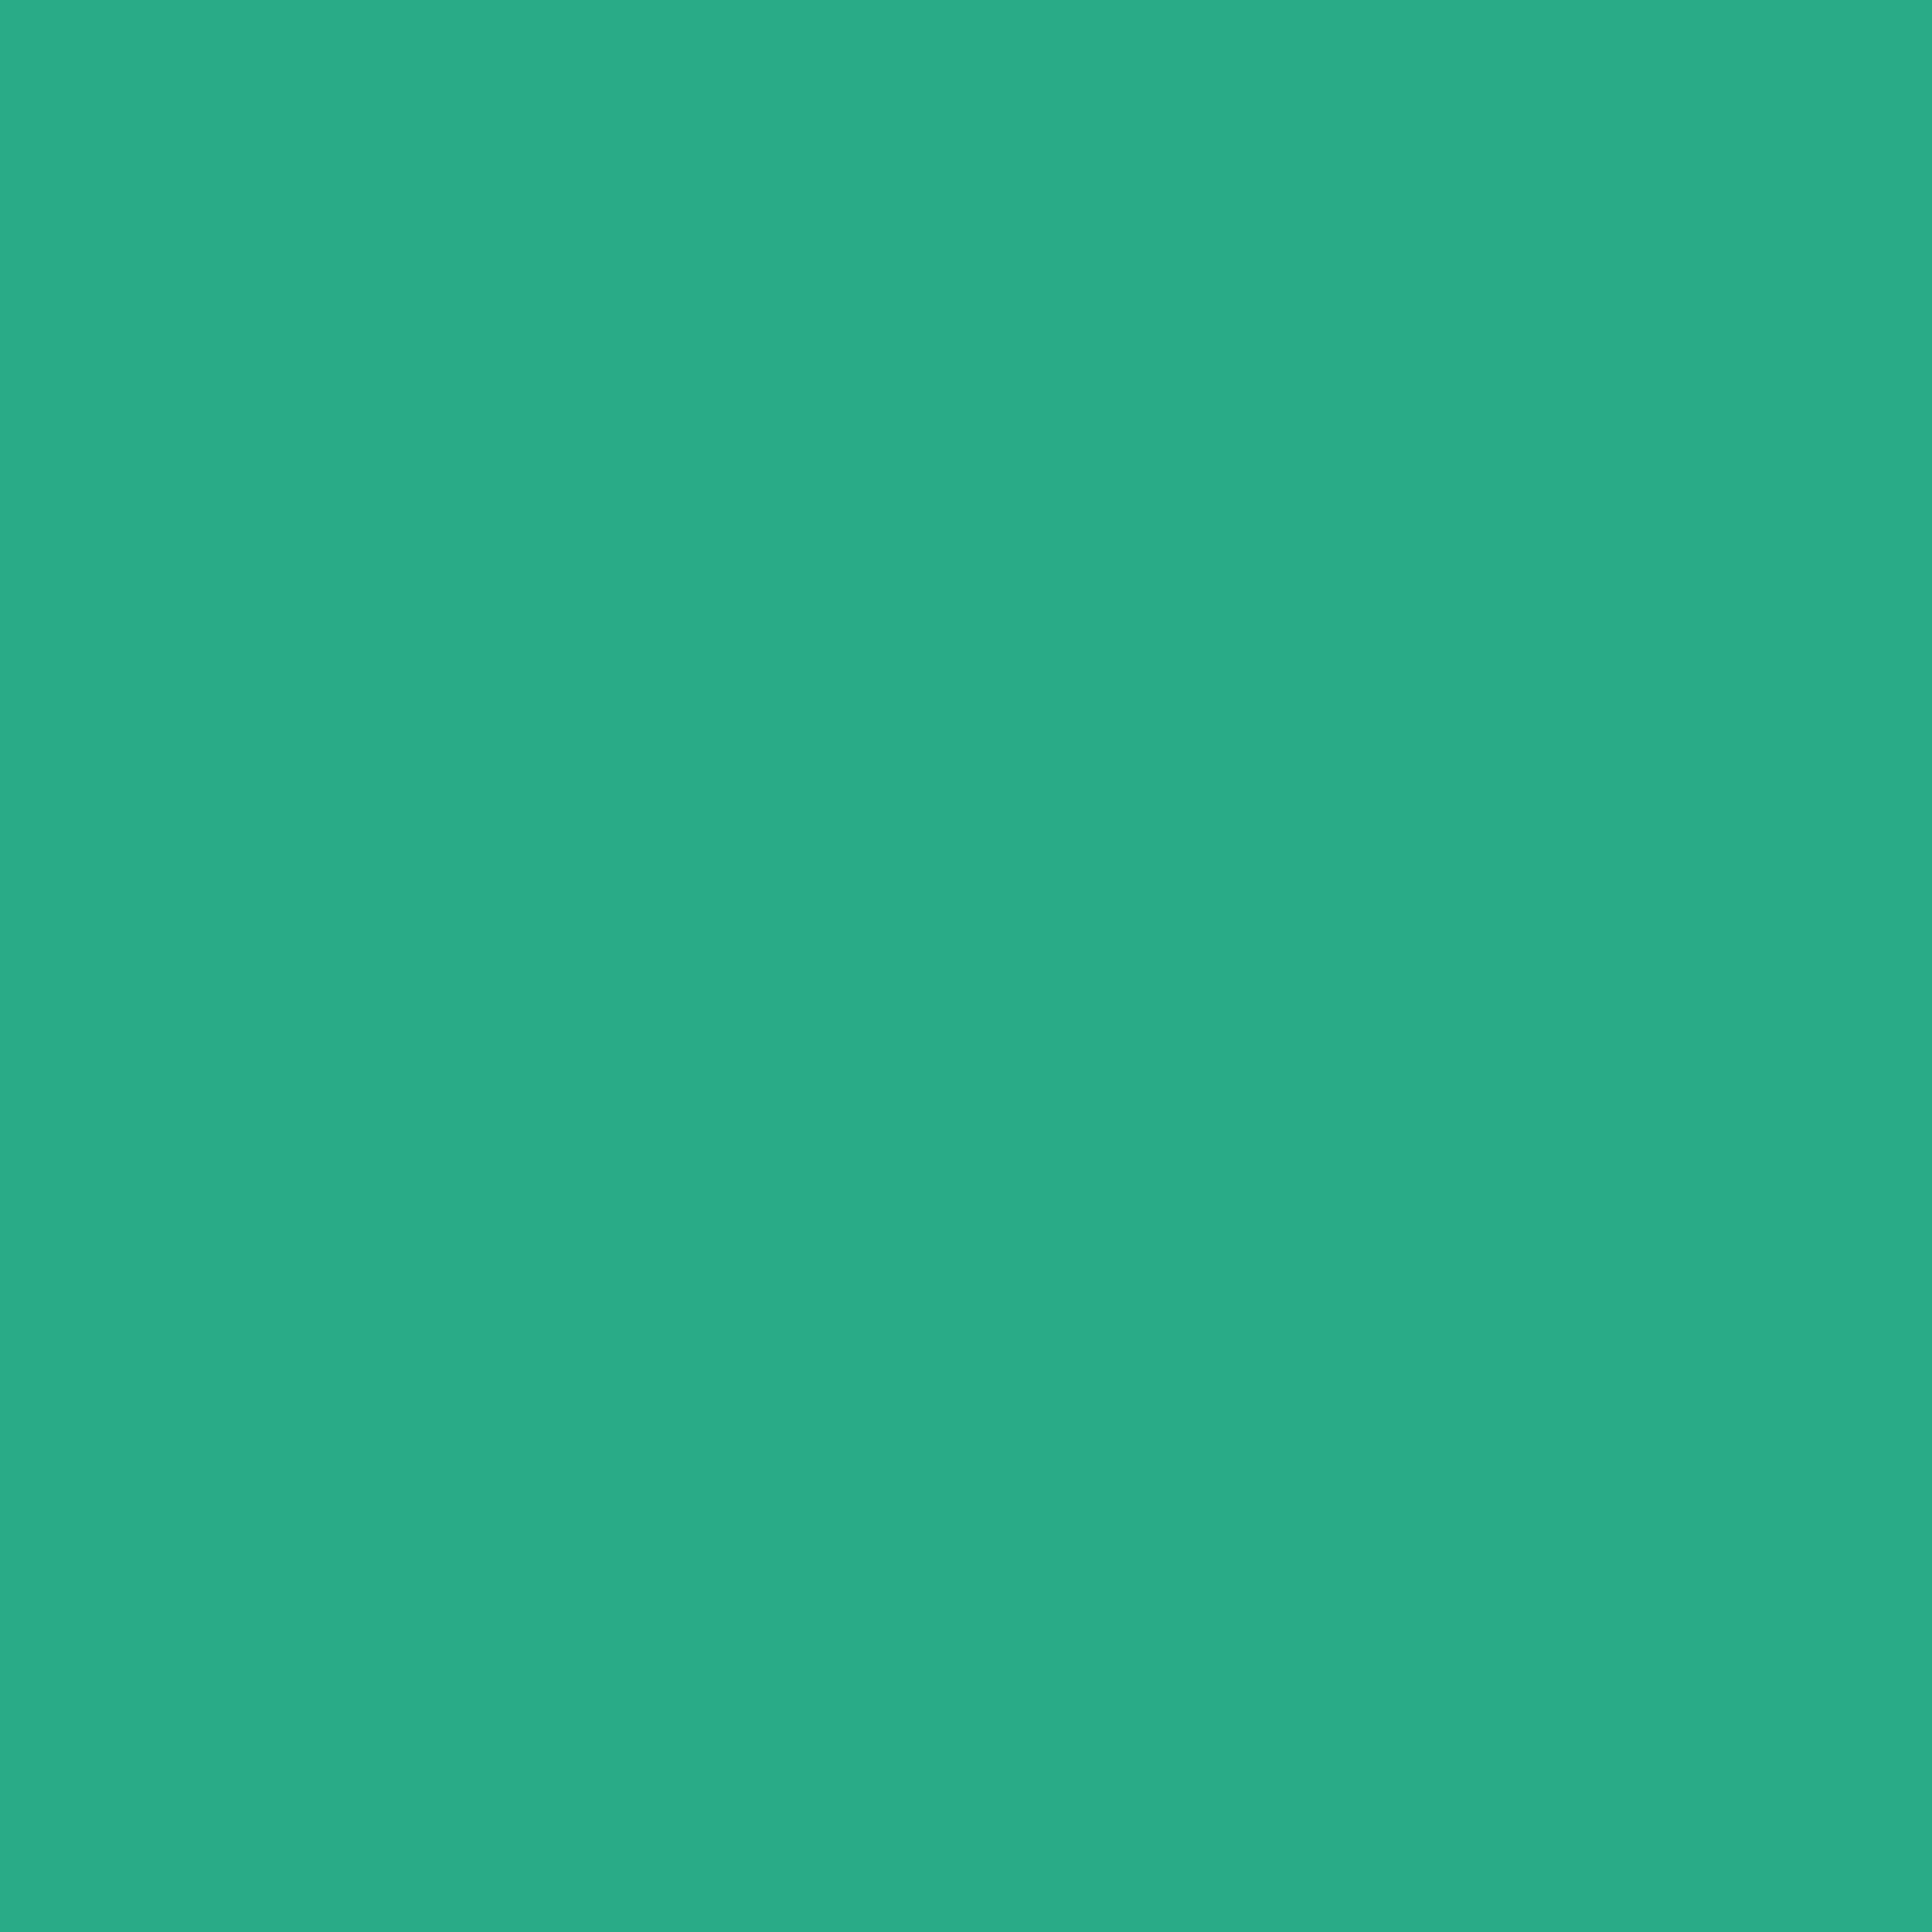 2732x2732 Jungle Green Solid Color Background